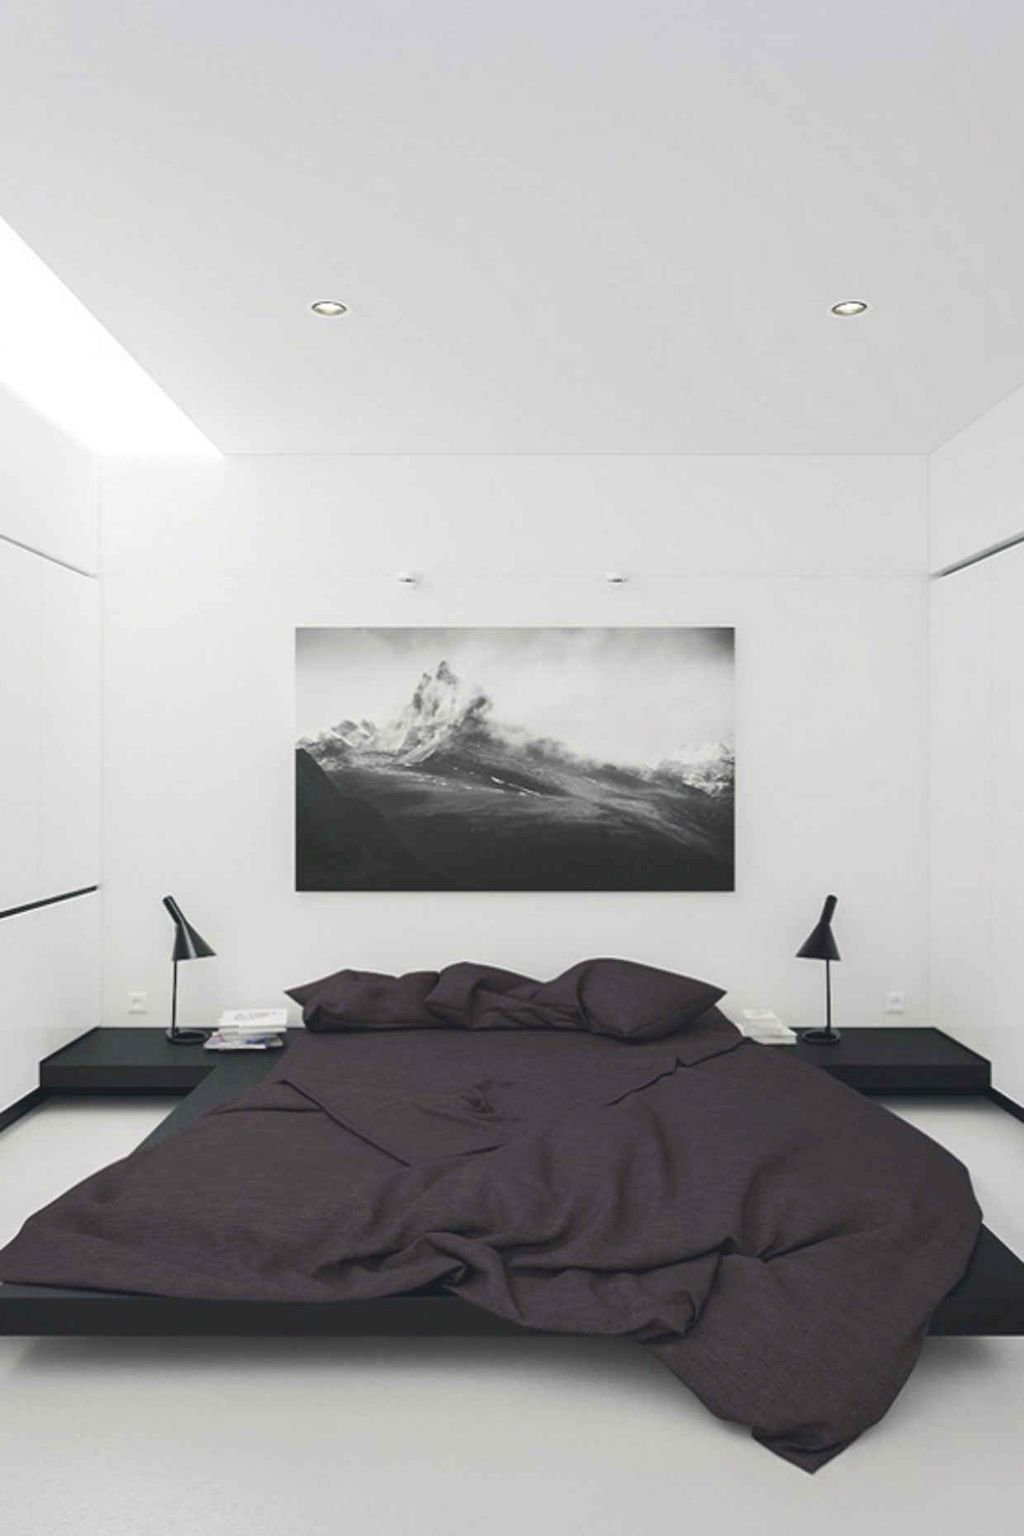 low profile bed frame black bedding treatment build in bedside tables in black wall decor in black and white